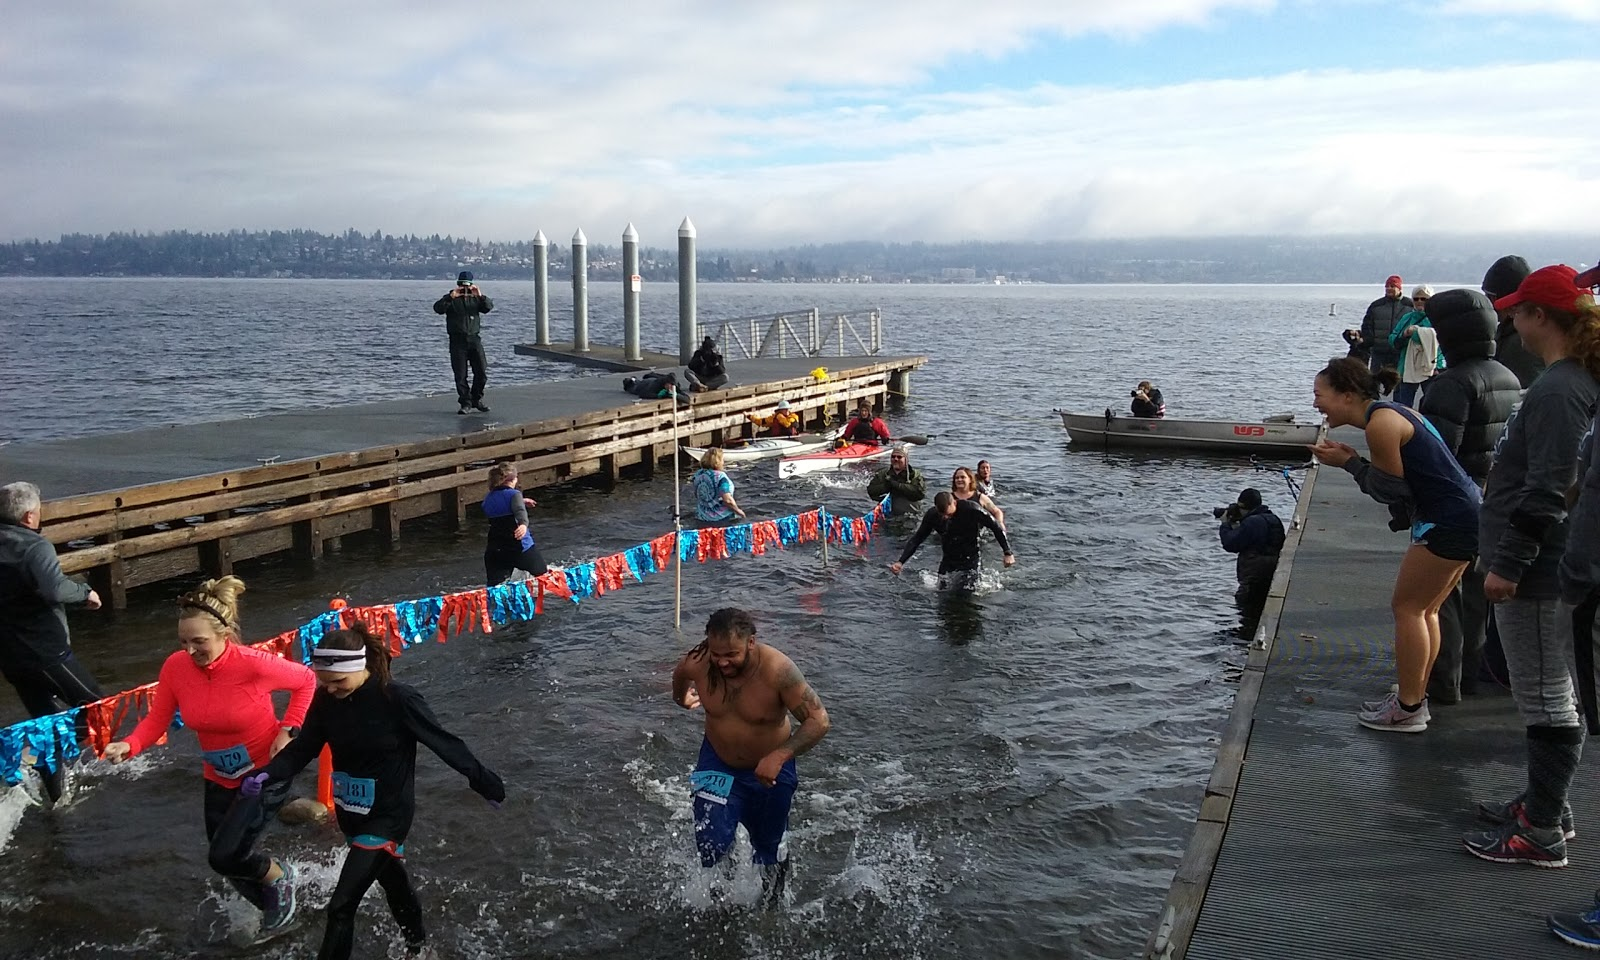 2017 Resolution Run 5K & Polar Bear Dive: Happy to run dry and watch others  take the plunge | Monte's running commentary